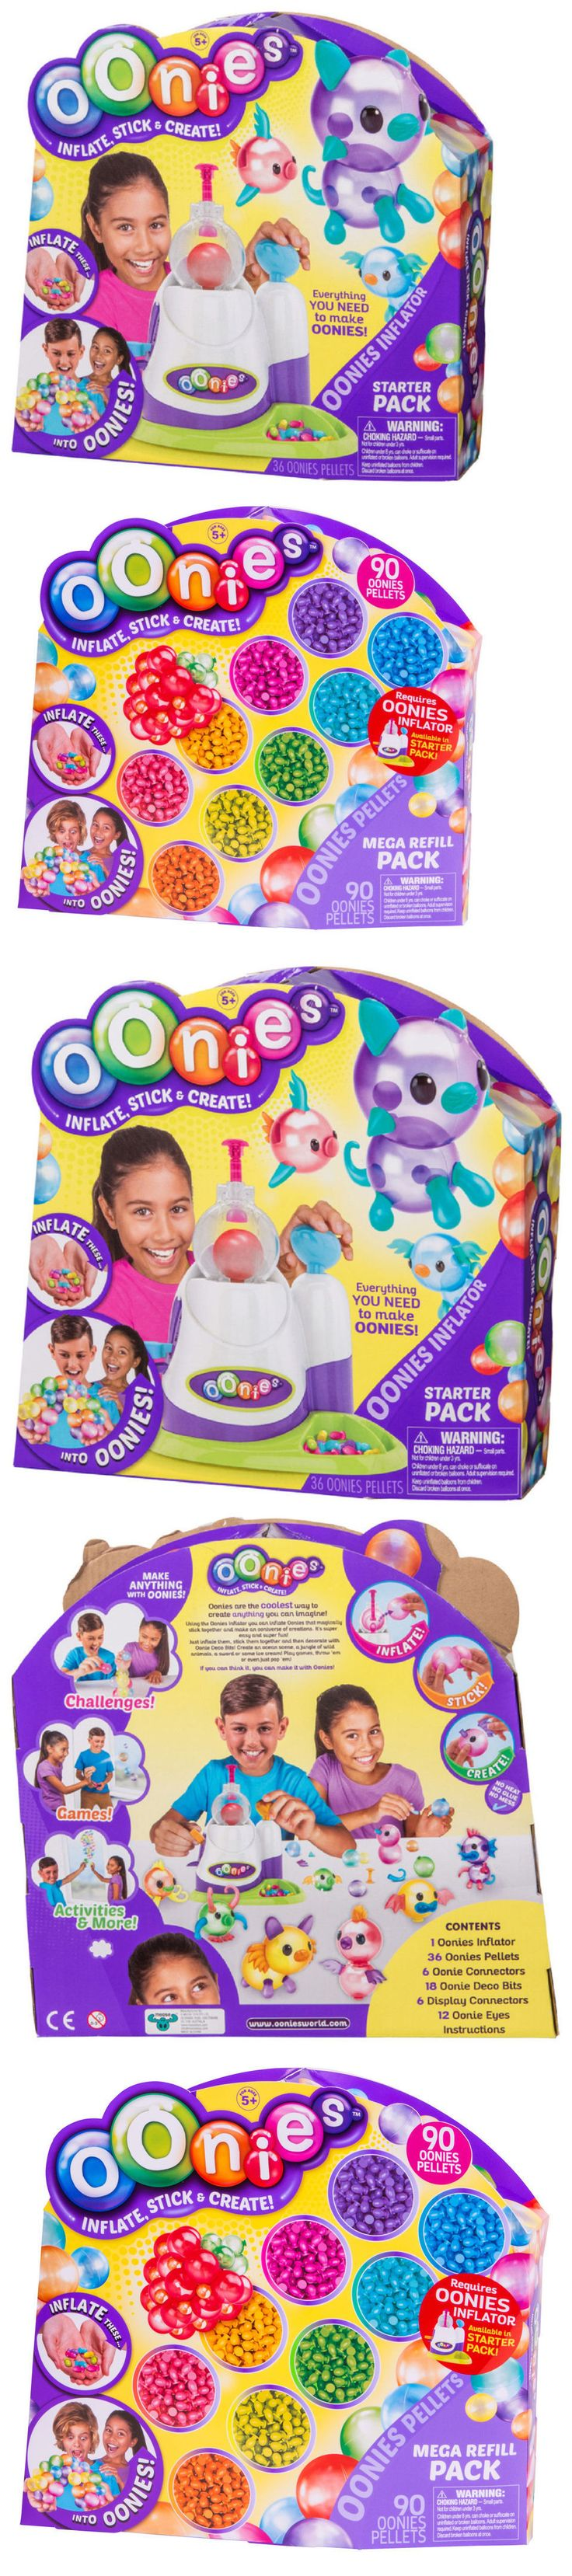 Other Kids Crafts 28145: Oonies - Inflator Starter Kit + Mega 90 Piece Refill Pack - Moose Toys 2017 New -> BUY IT NOW ONLY: $64.99 on eBay!